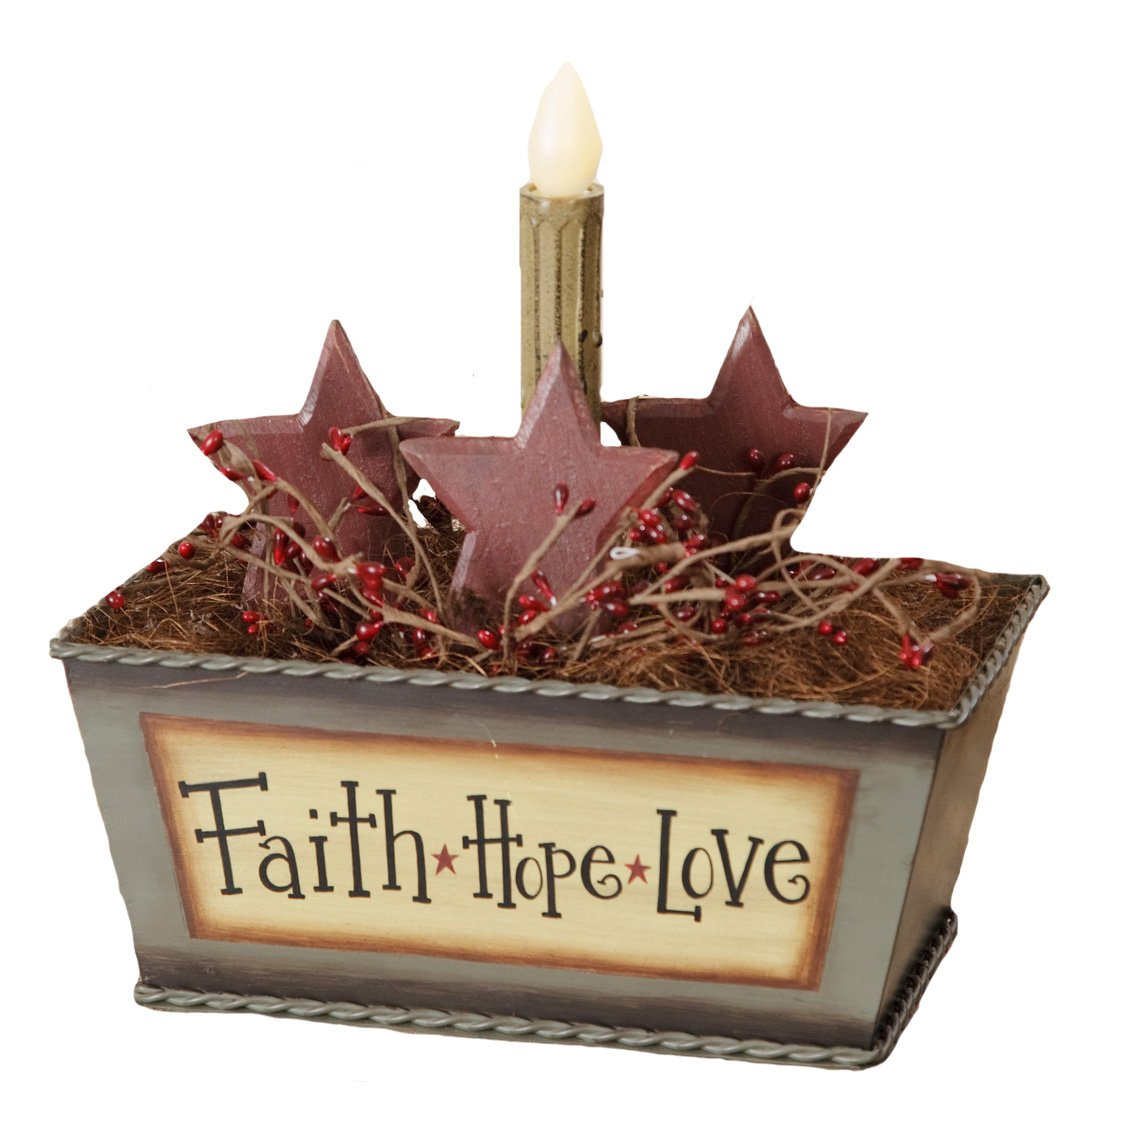 Your Hearts Delight Faith Hope Love Tin Box Decor with LED Candle Light, 9-1/4 by 9-1/2 by 5-1/2-Inch